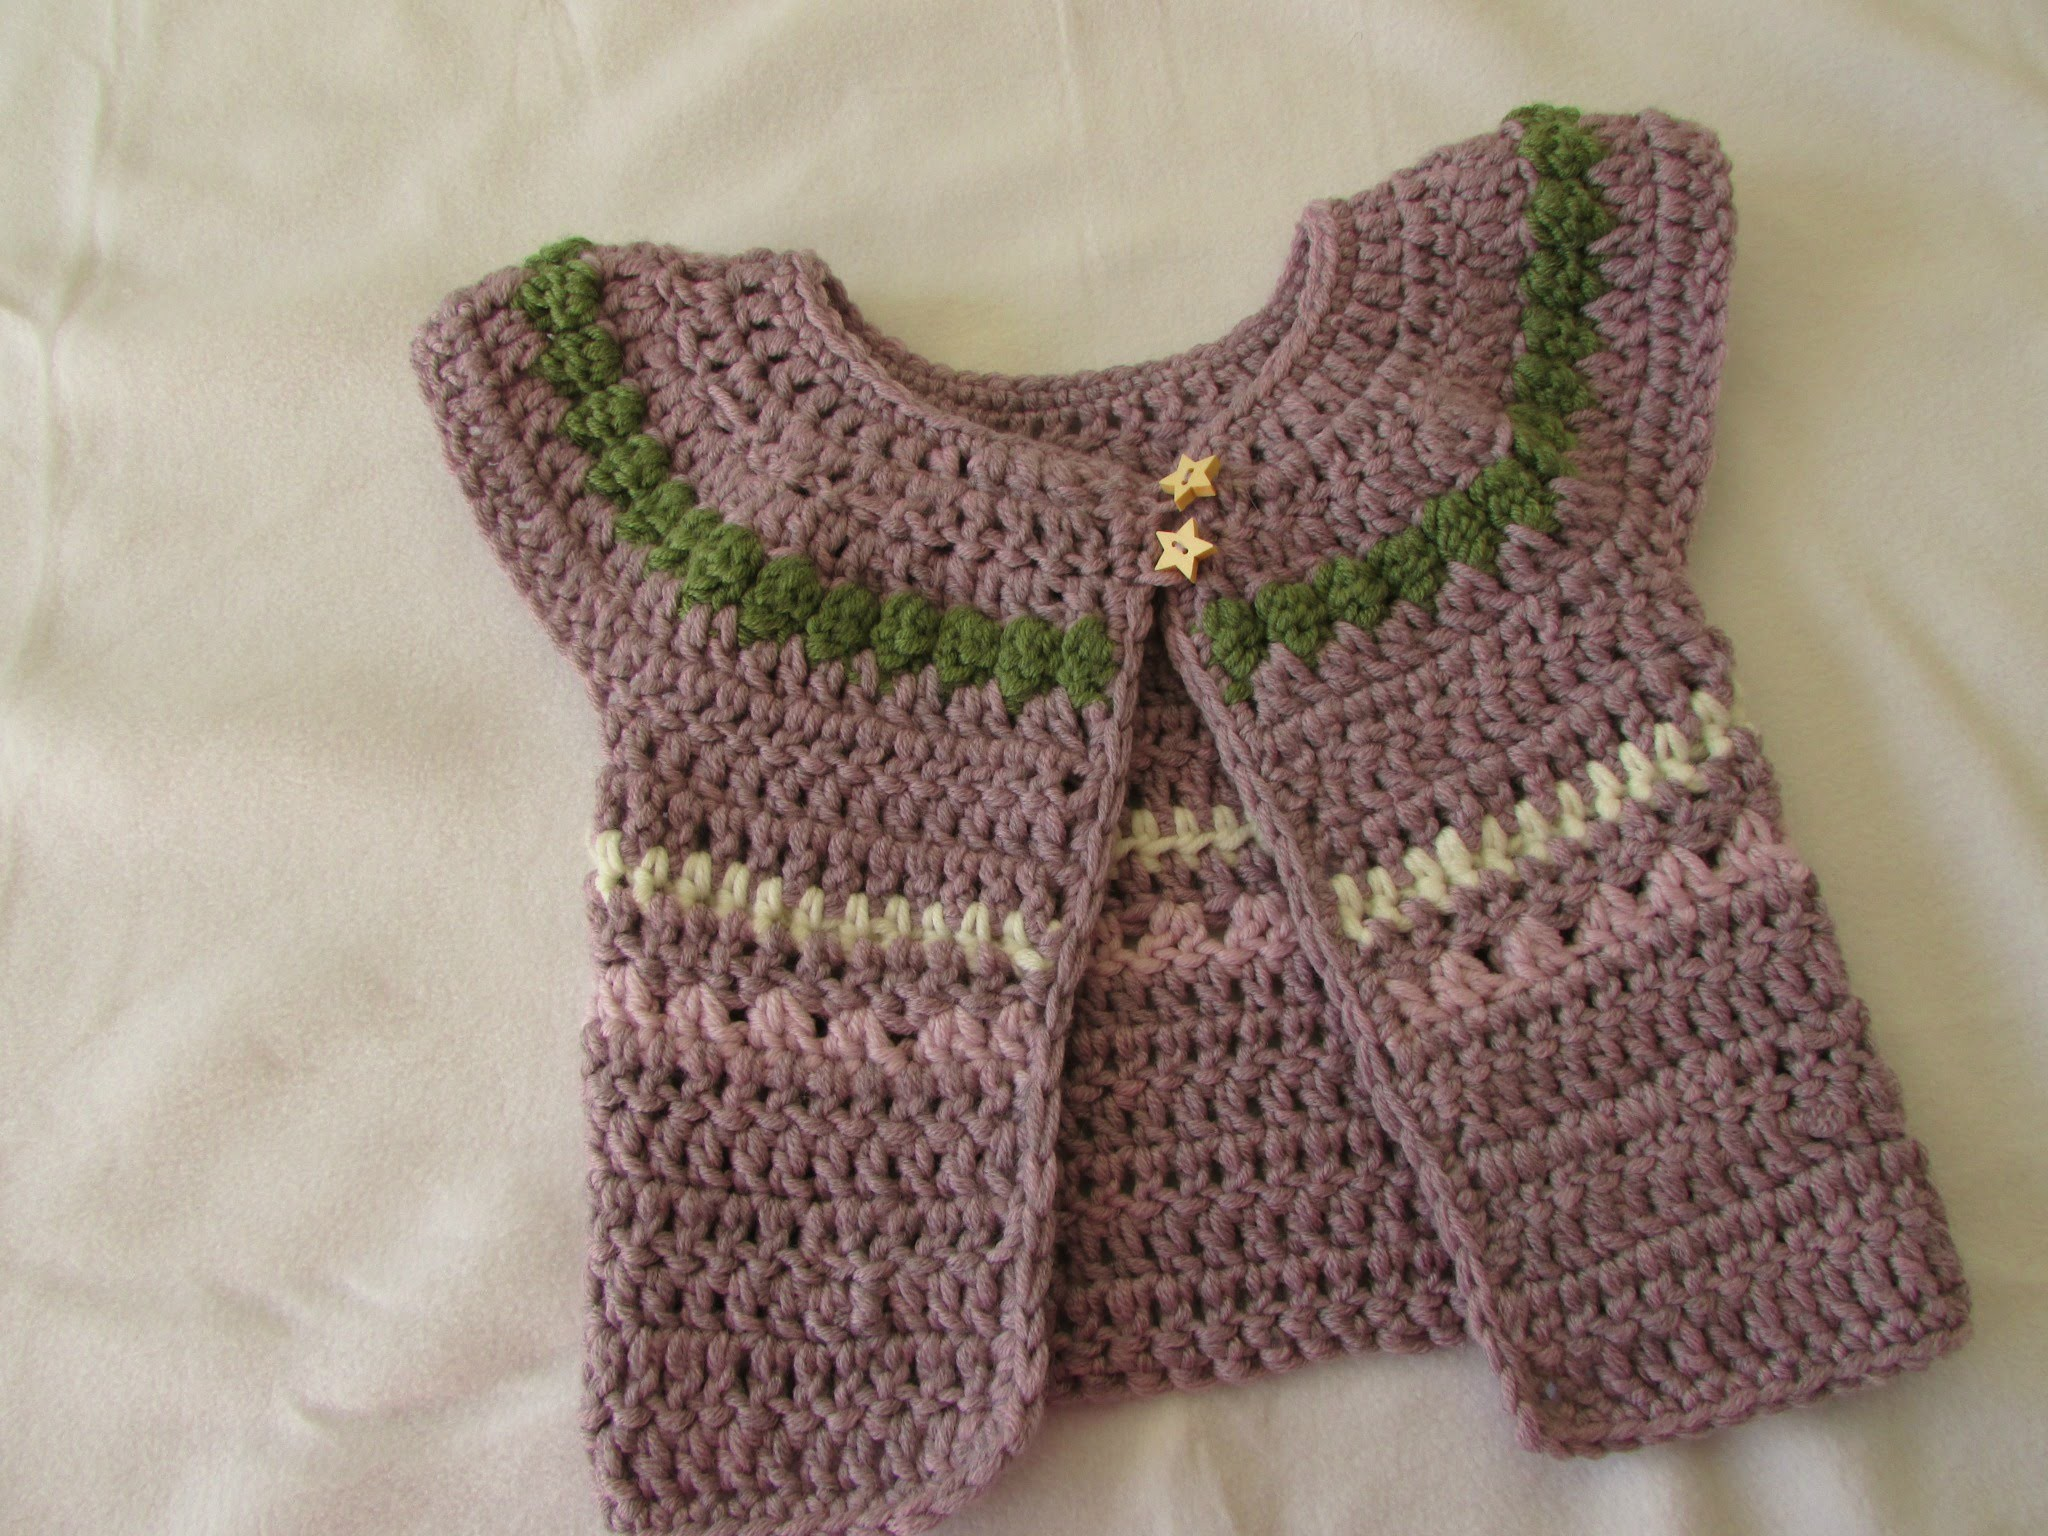 VERY EASY chunky crochet baby. girl's cardigan tutorial - fair isle sweater. jumper